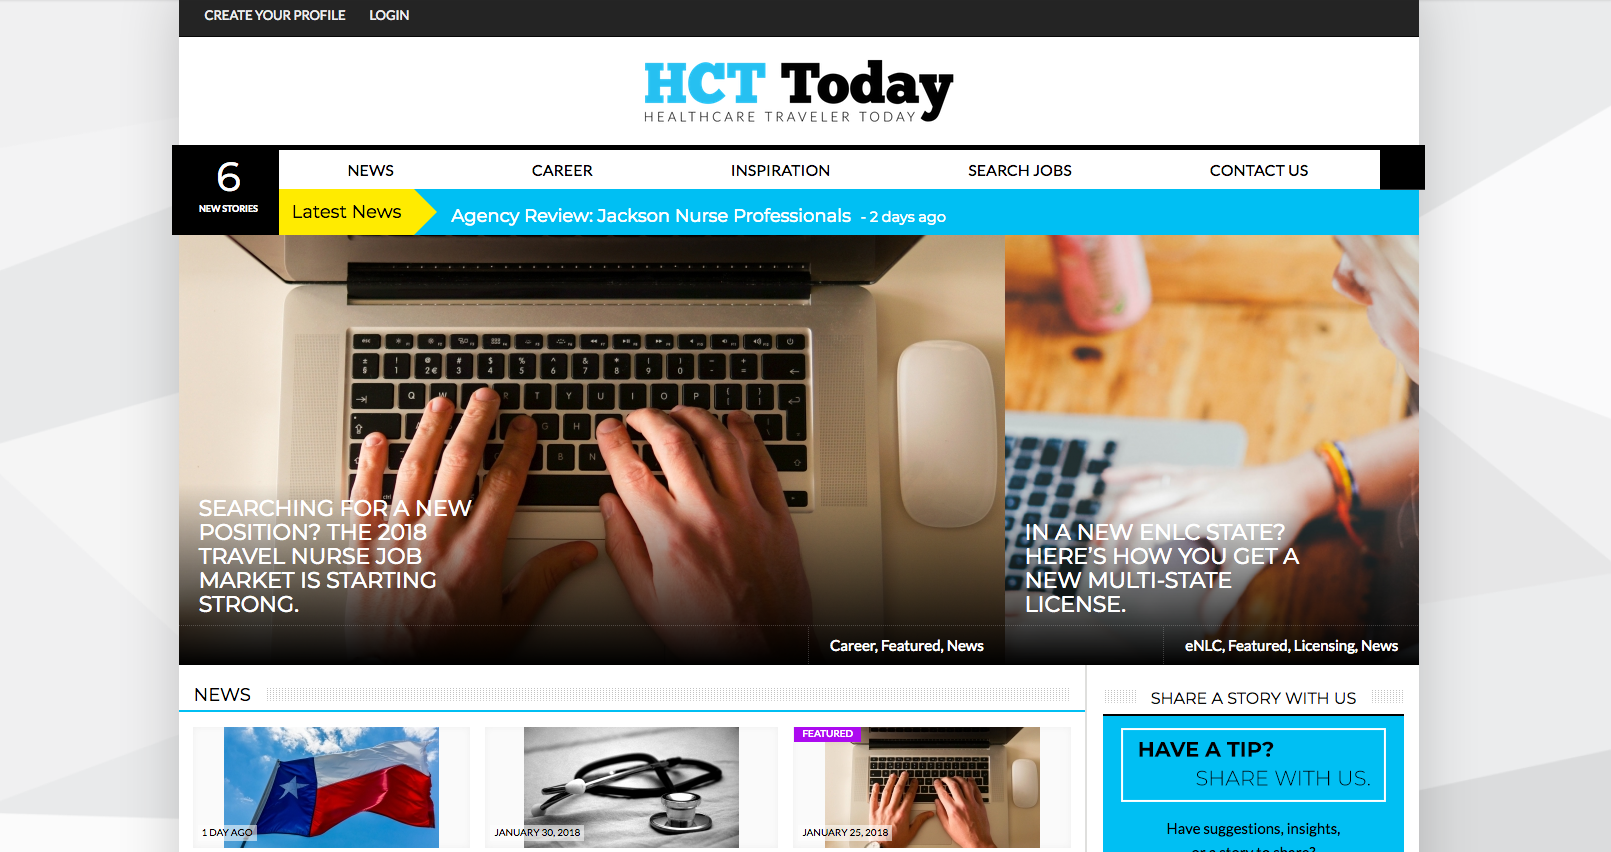 hct today home page-archive-healthcare traveler today